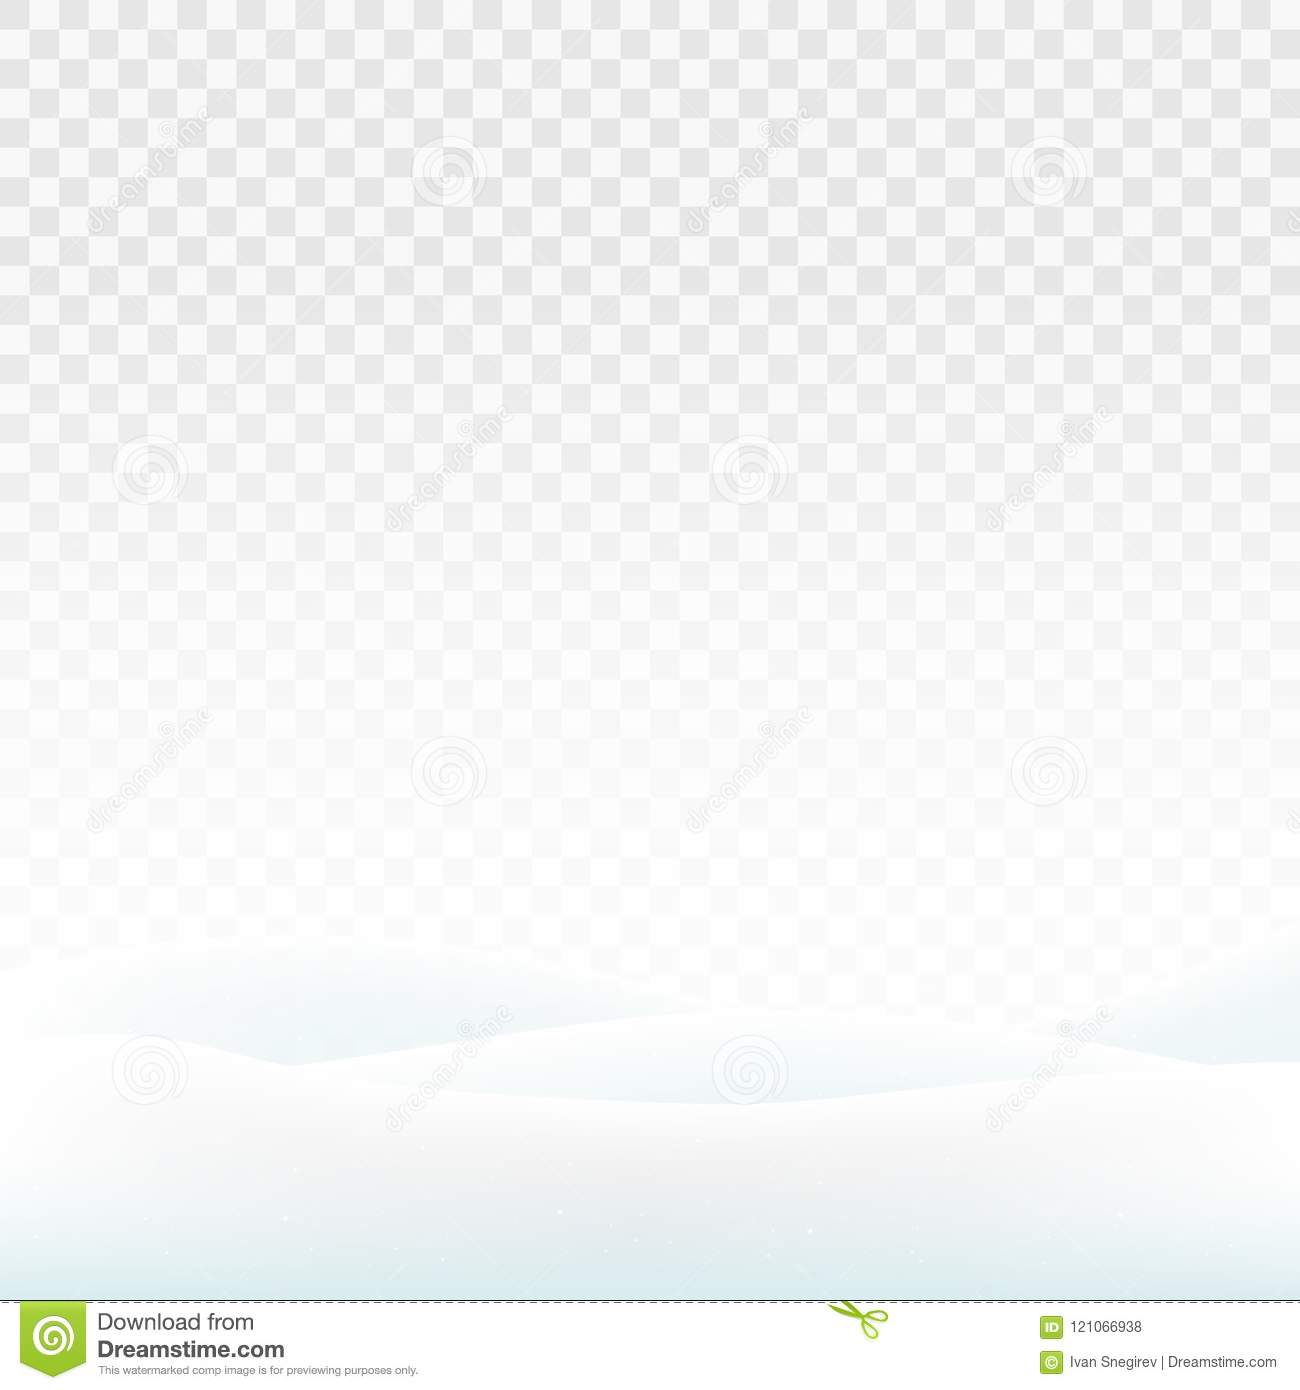 Stock vector illustration snowdrifts isolated on a transparent background. White snow. Snowy hills. The dunes of snow. EPS 10